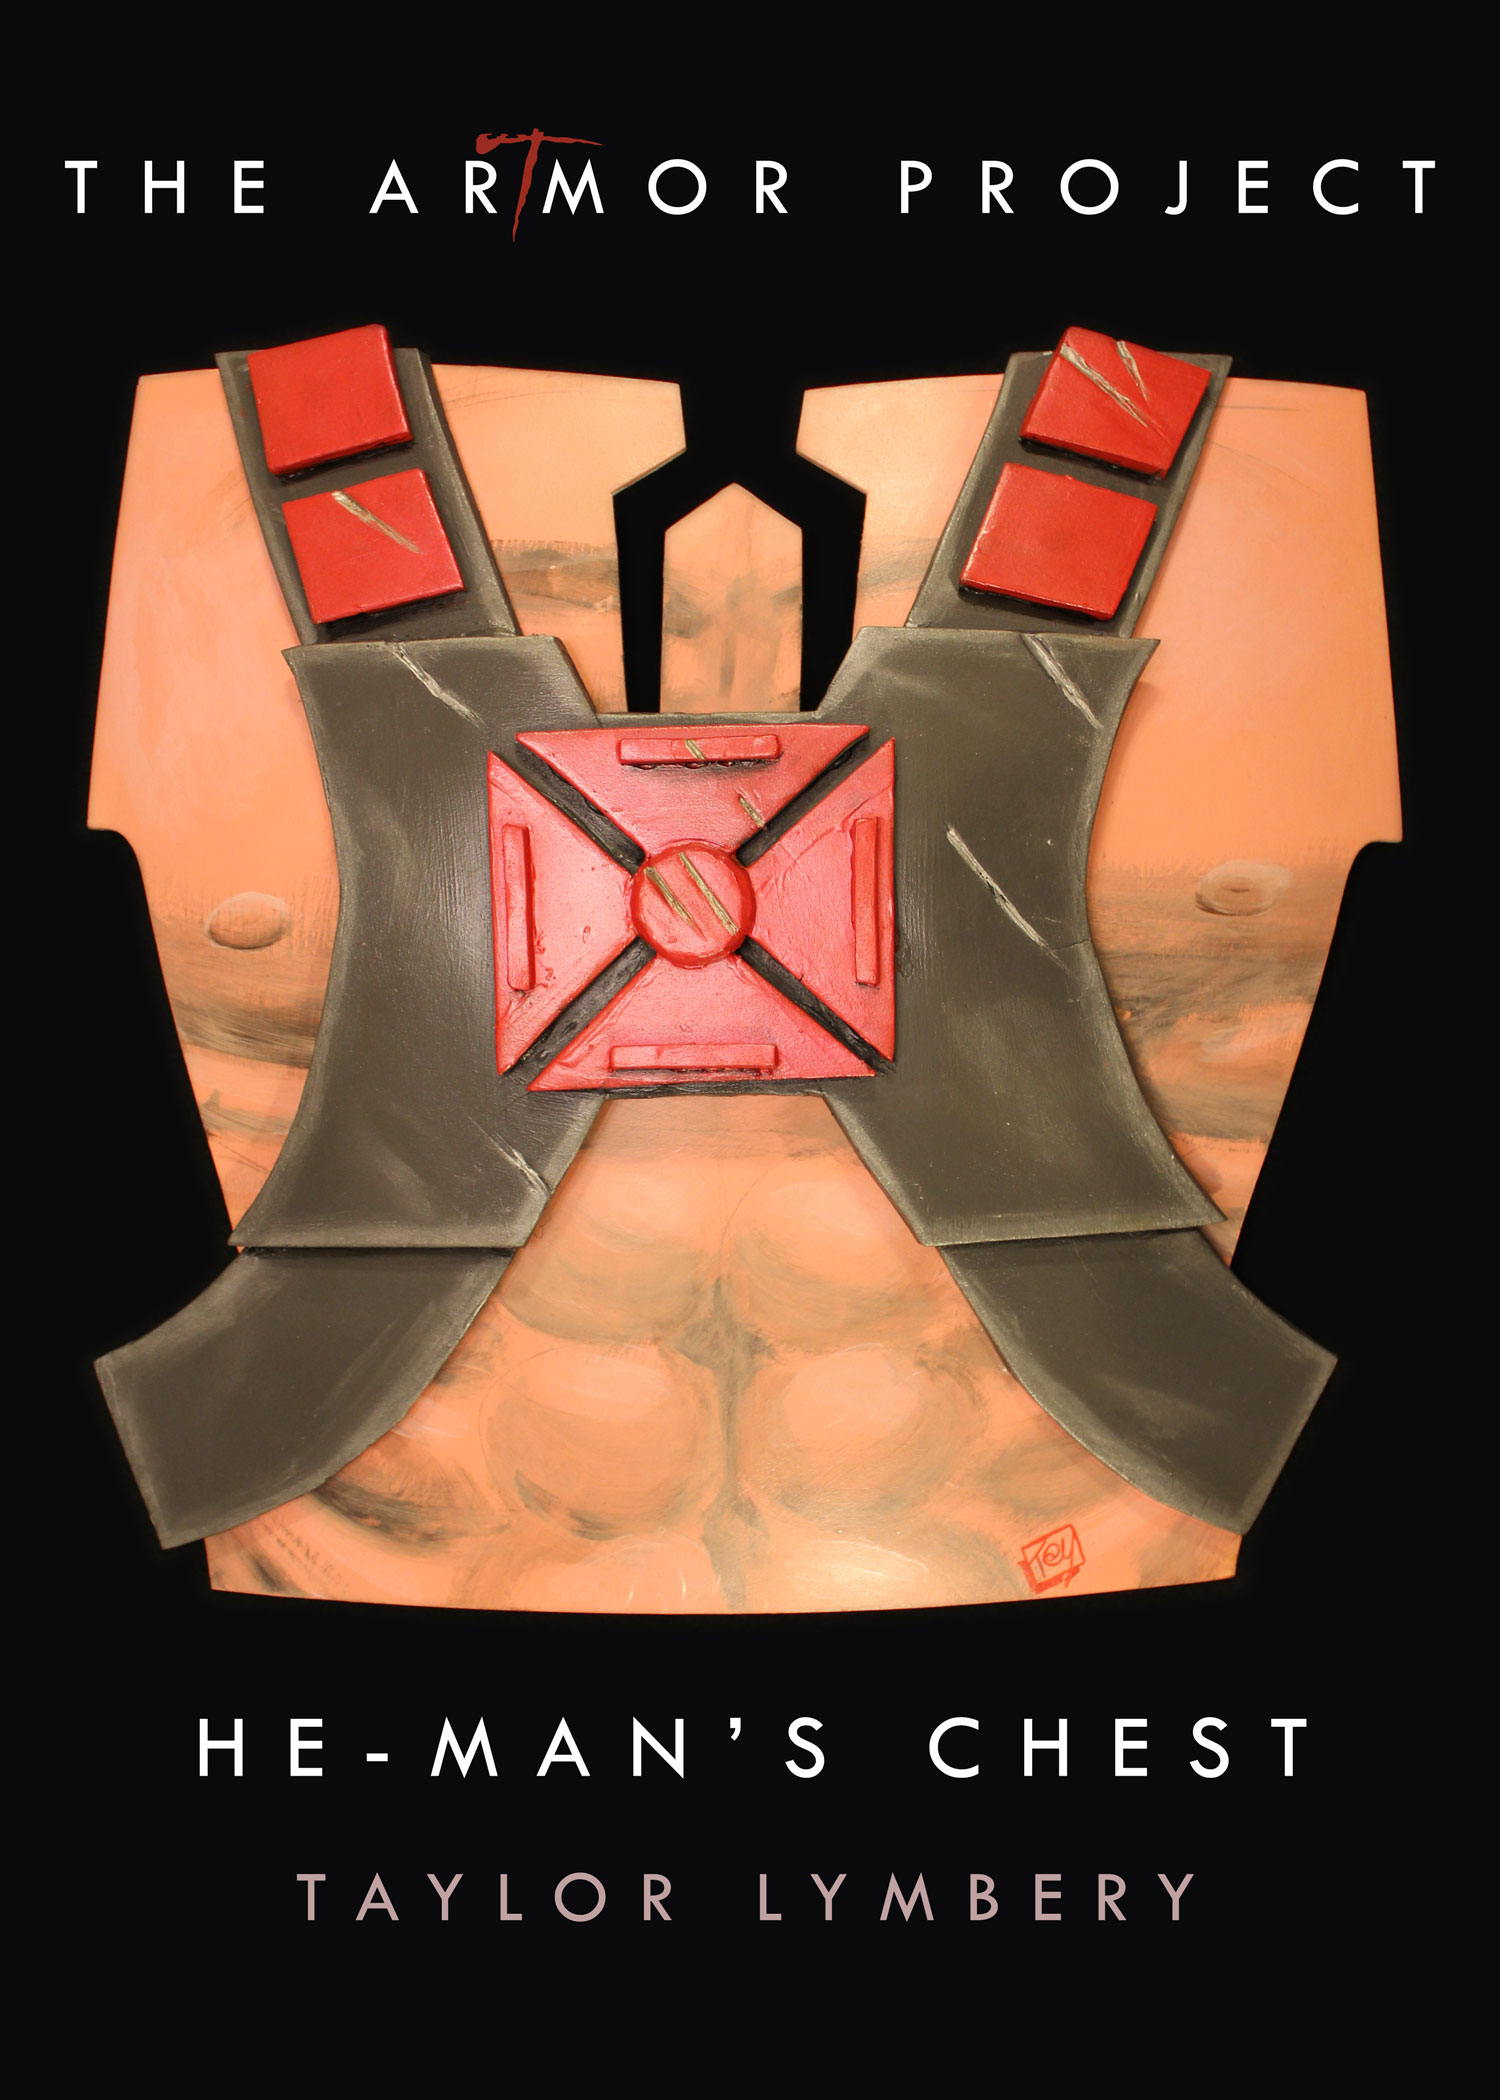 ArTmor 2014: He-Man's Chest